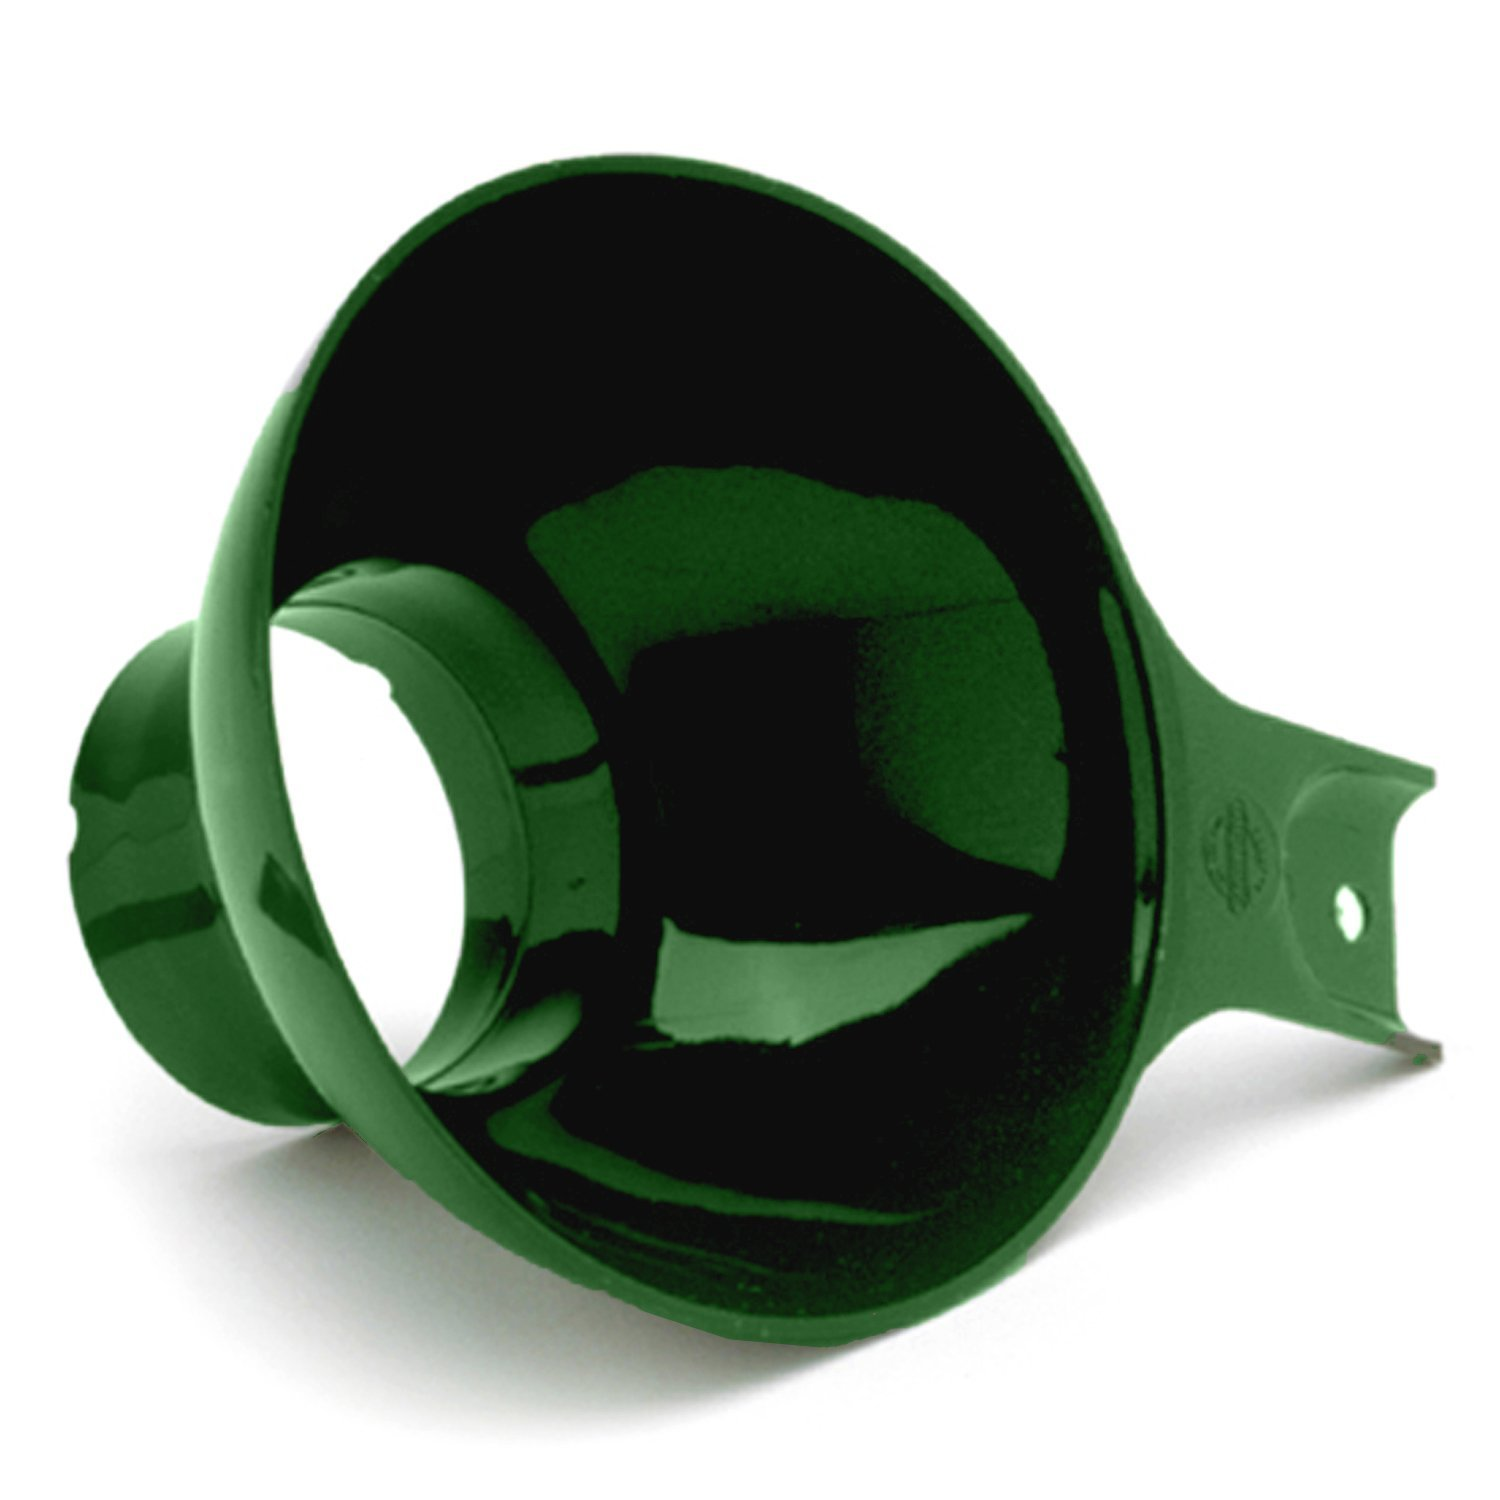 Norpro Canning Wide Mouth Plastic Funnel Green 4.75in//12cm